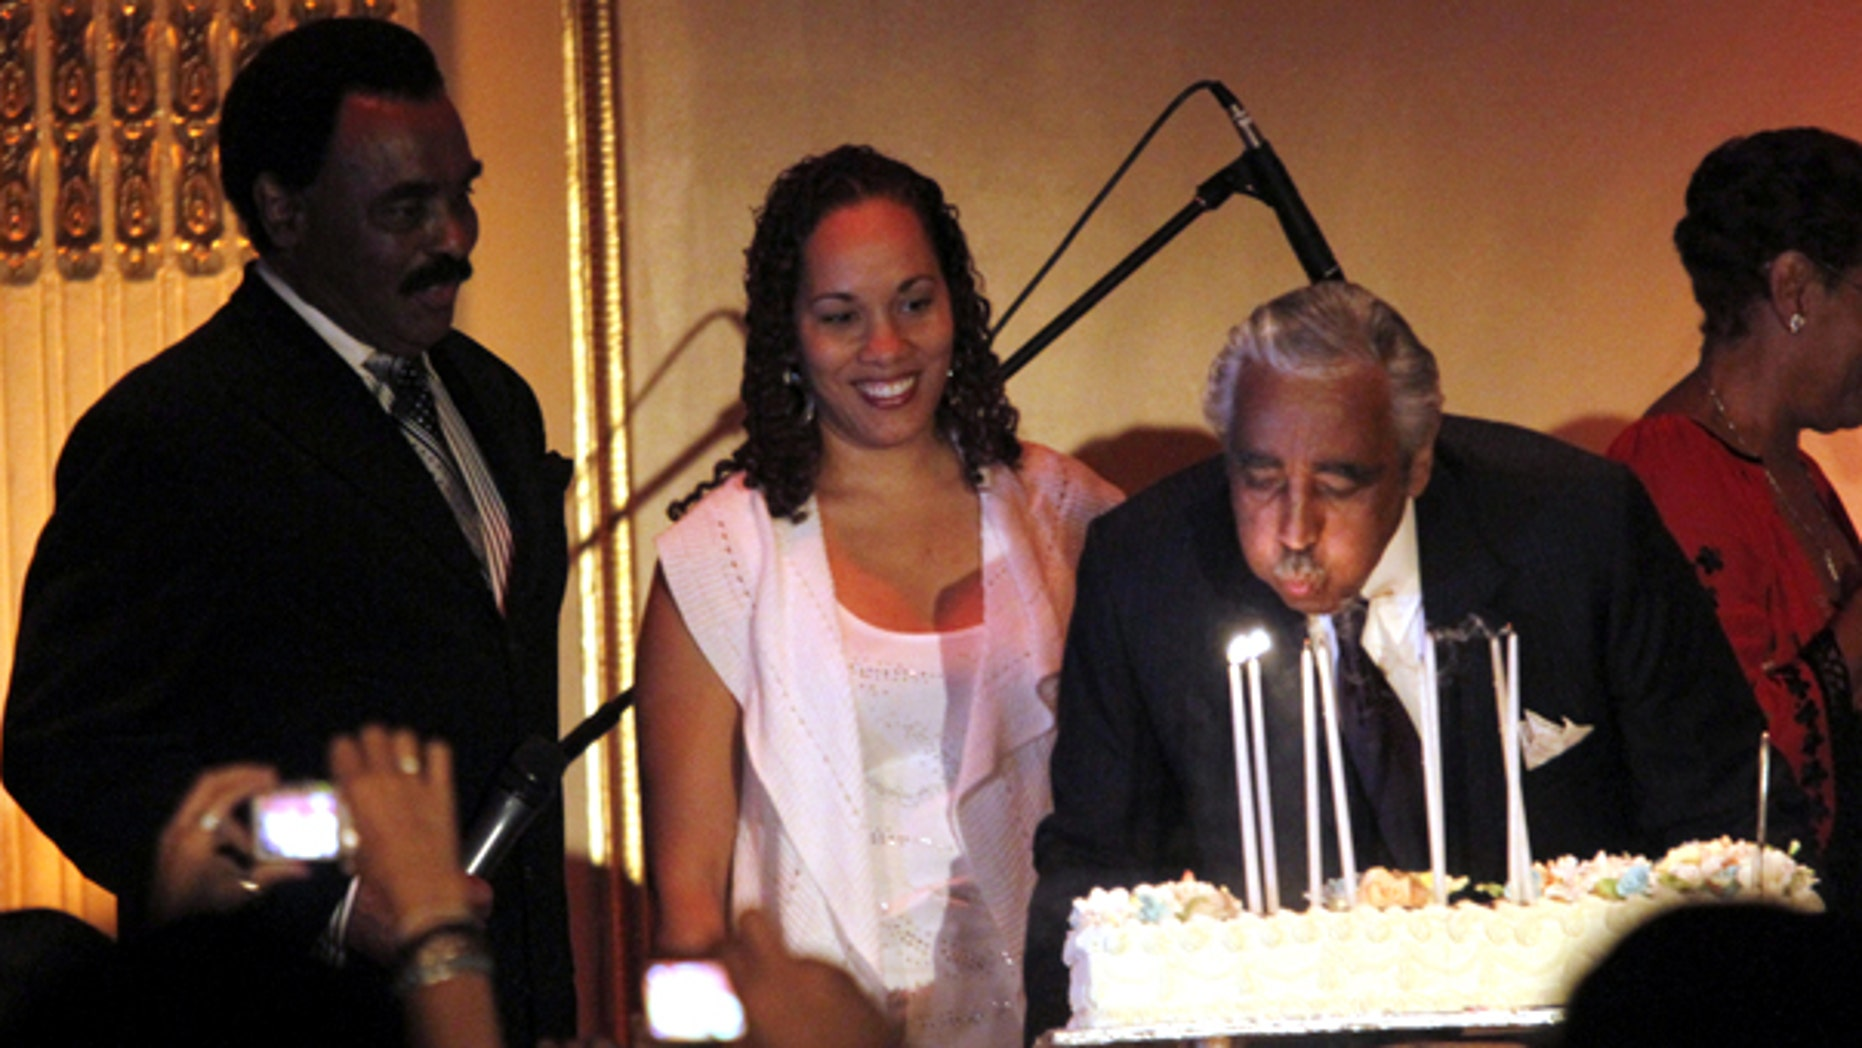 Aug. 11: Rep. Charles Rangel blows out his candles while onstage with his daughter Alicia Rangel, center, and singer Chuck Jackson during his birthday fundraiser at the Plaza Hotel in New York.